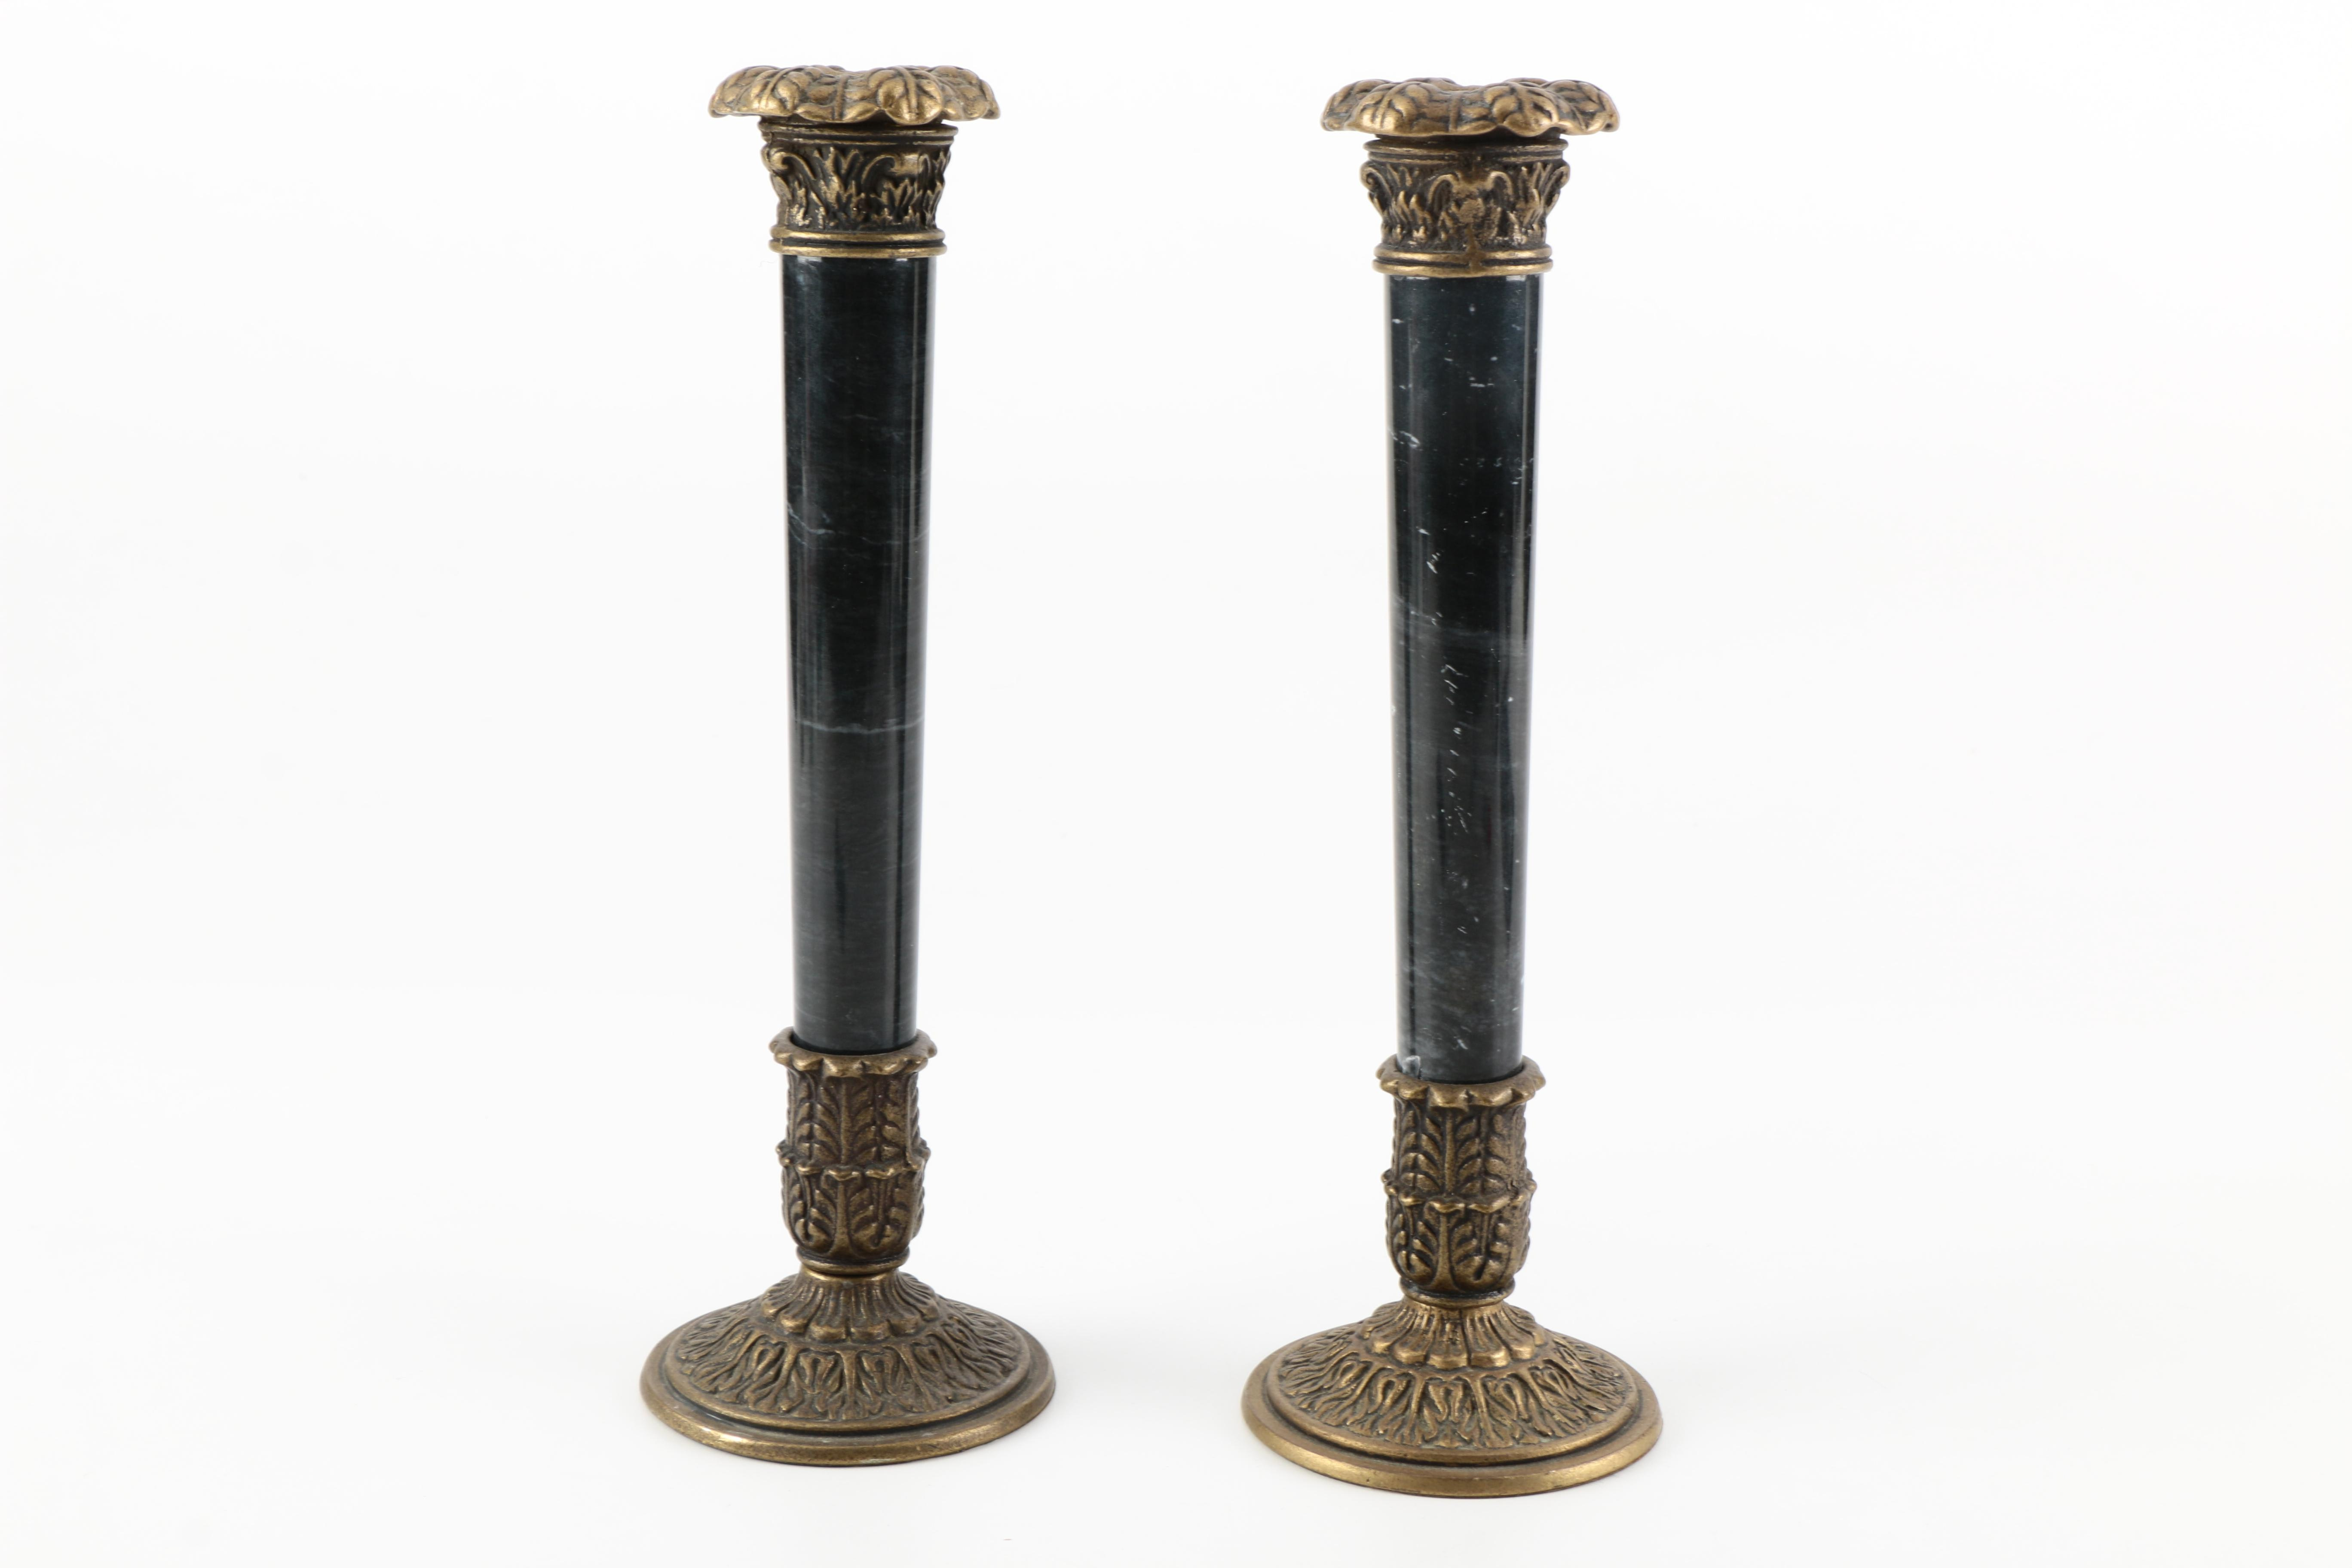 Brass and Marble Candlesticks